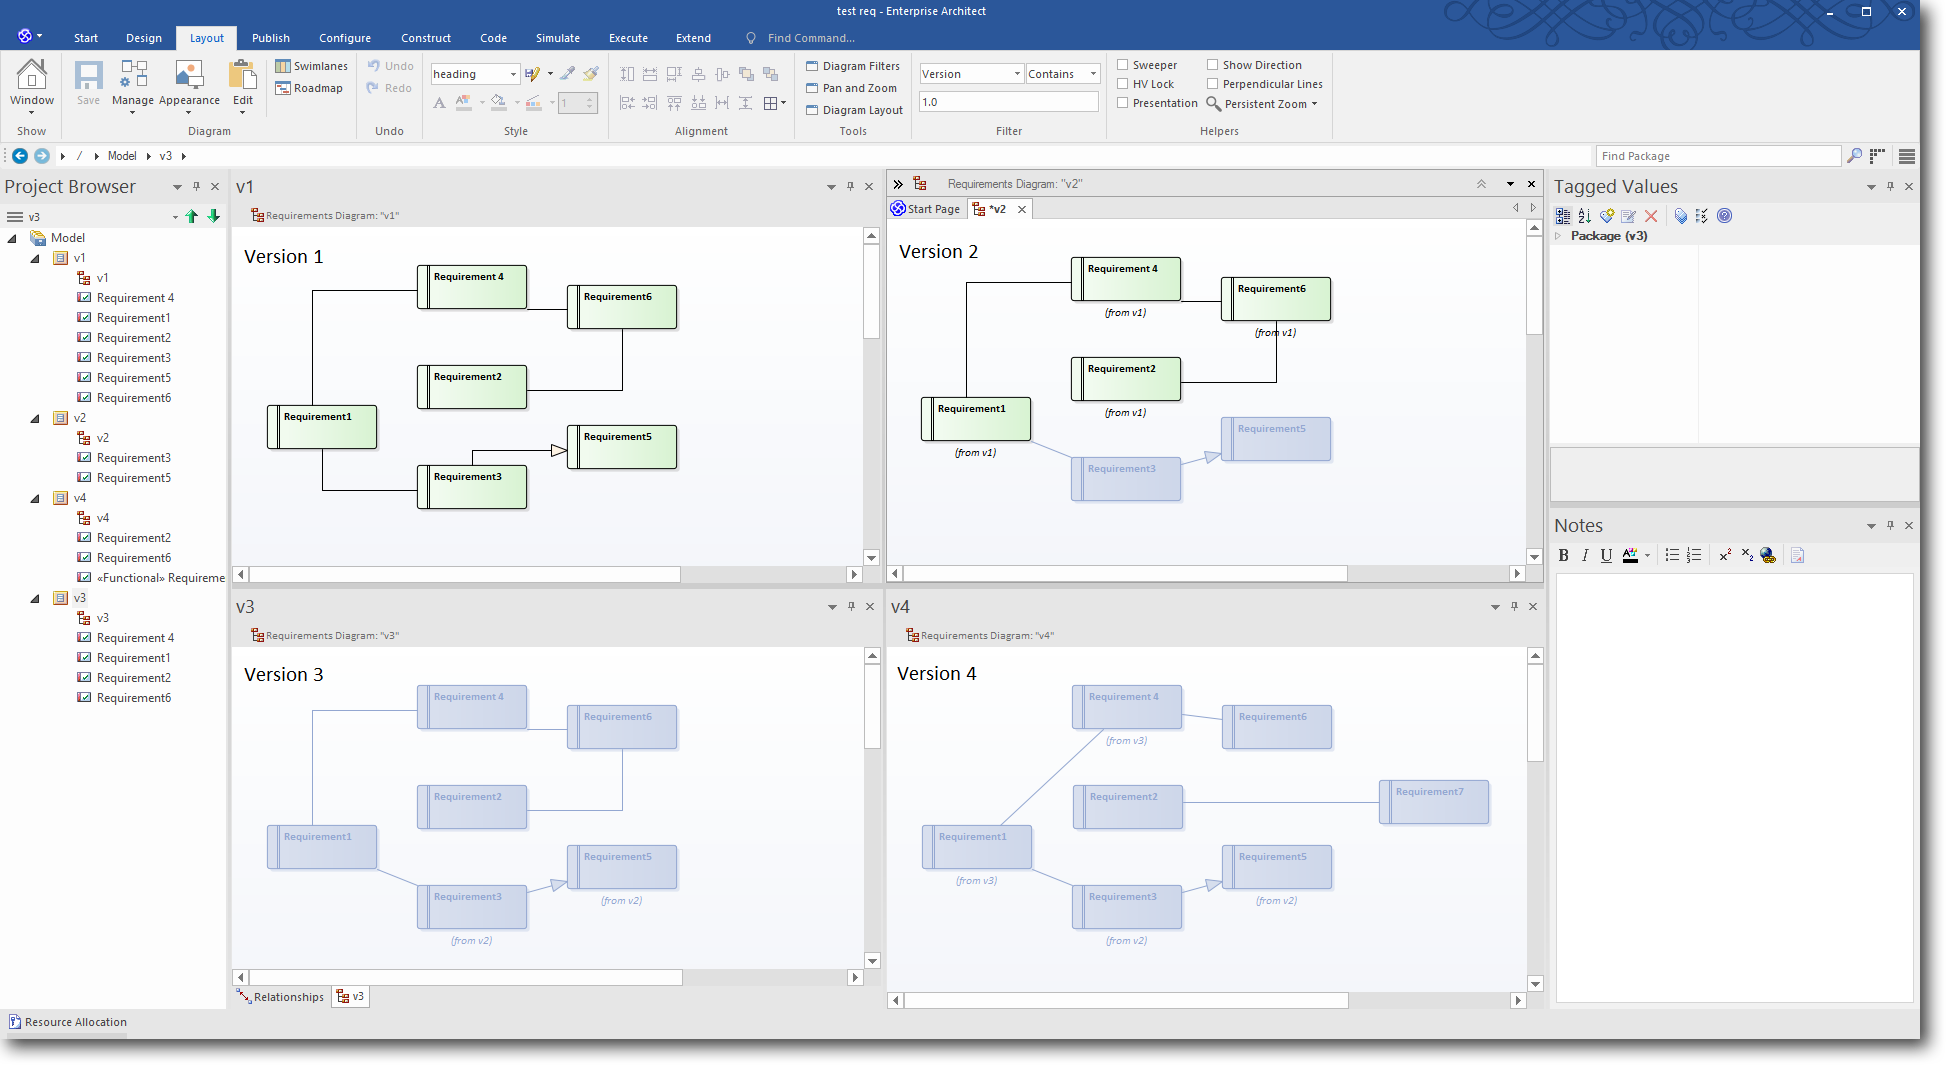 Enterprise Architect 13.5 Beta: Time Aware Modeling